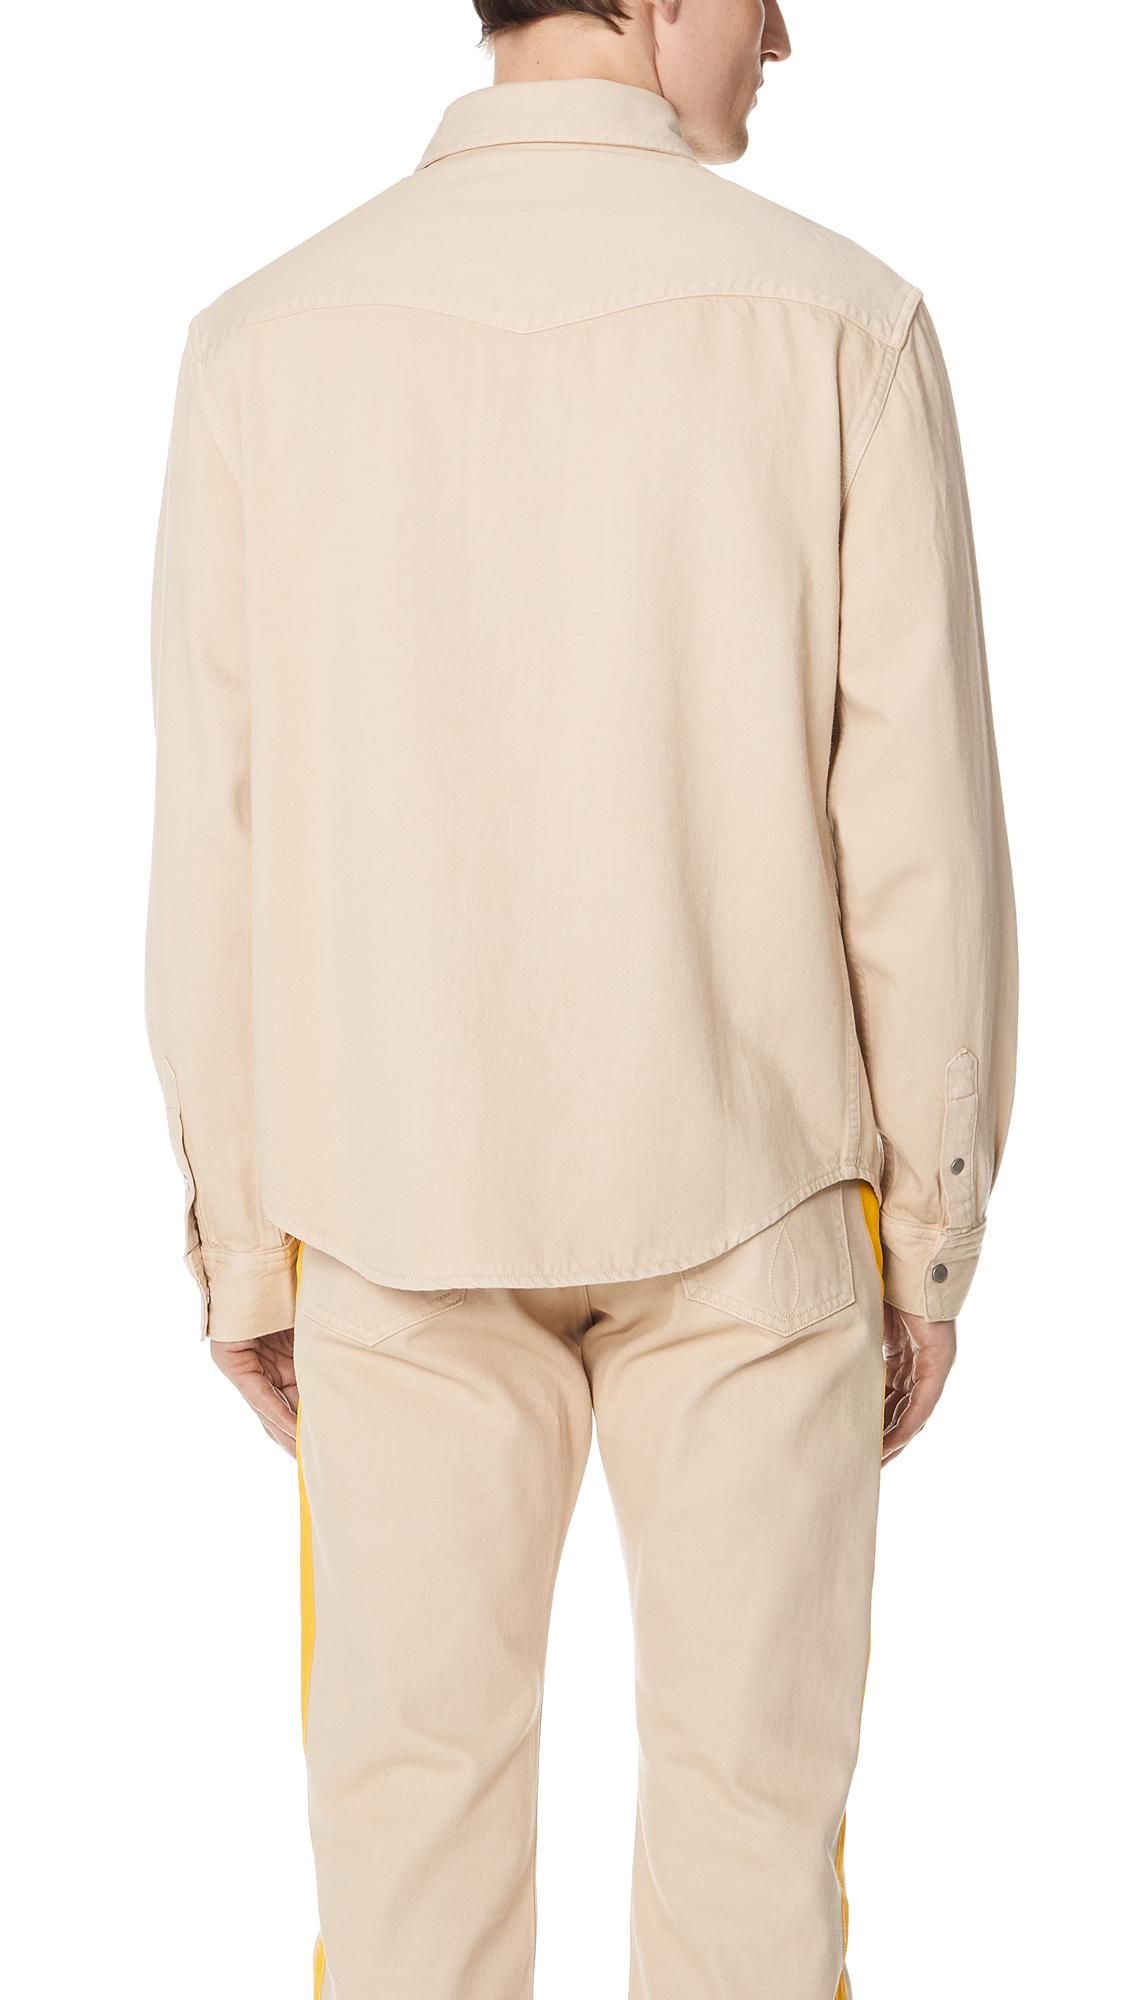 Calvin Klein Jeans Archive Western Blocked Shirt - Natural Outlet New Styles Sale Pay With Paypal Outlet Enjoy mDV1jPp